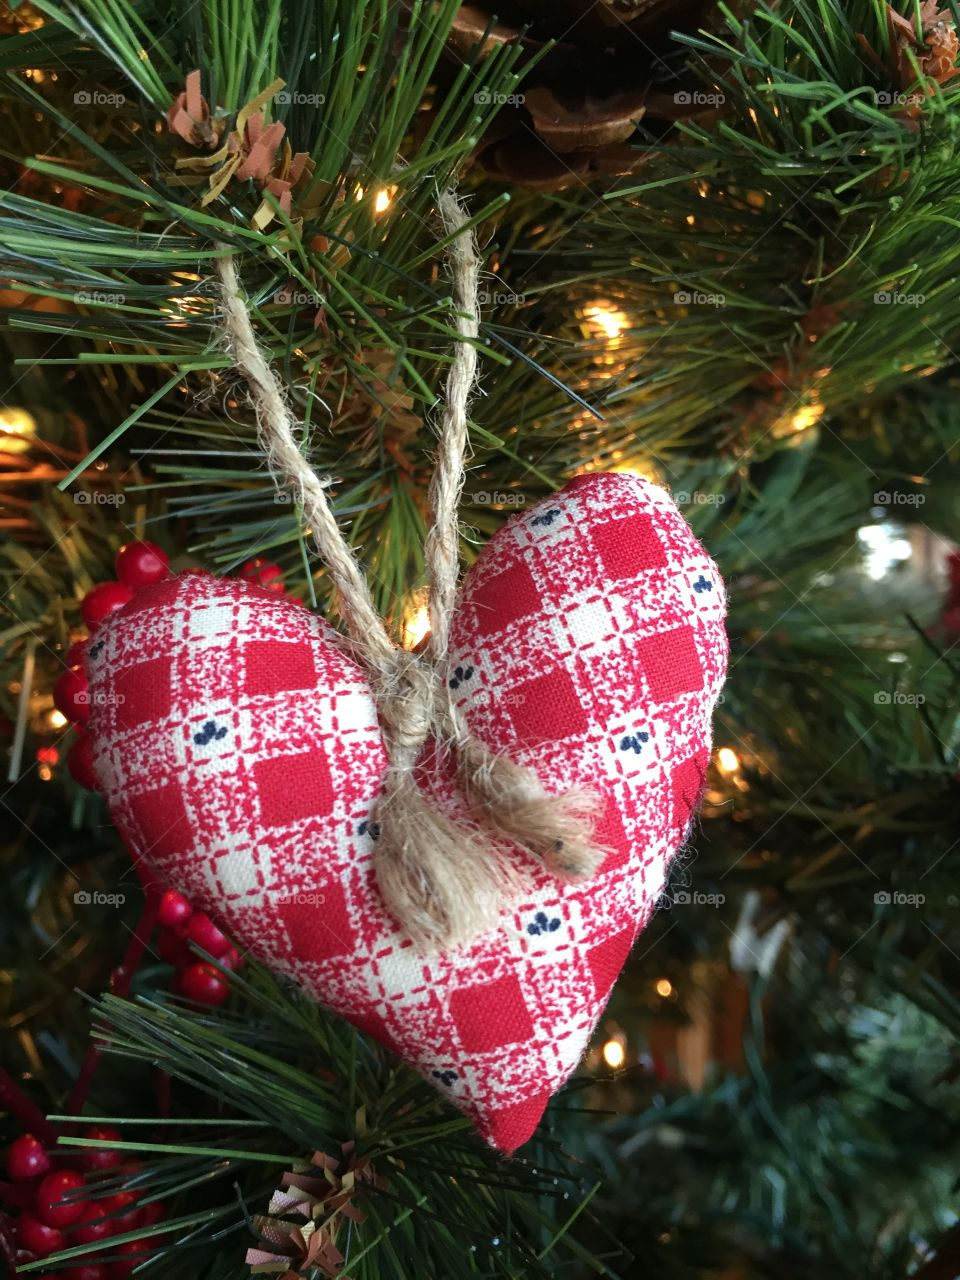 🎄 Red Heart on Christmas Tree. 🎄🎄 Merry Christmas to all.🎄🎄